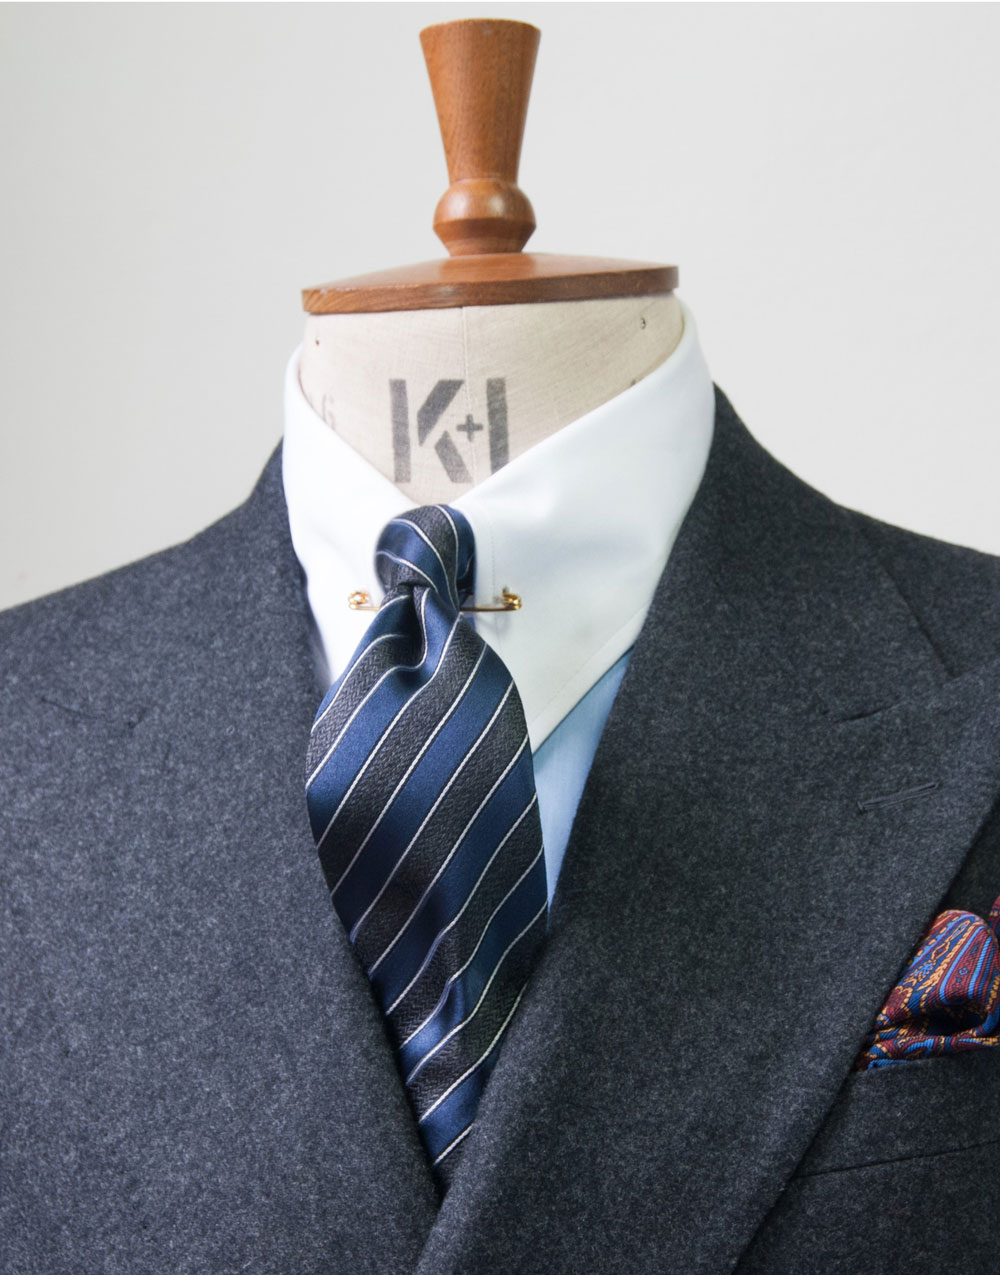 How To Tie a Tie – Edward Sexton Explains how to tie the perfect knot with a seven fold silk tie.